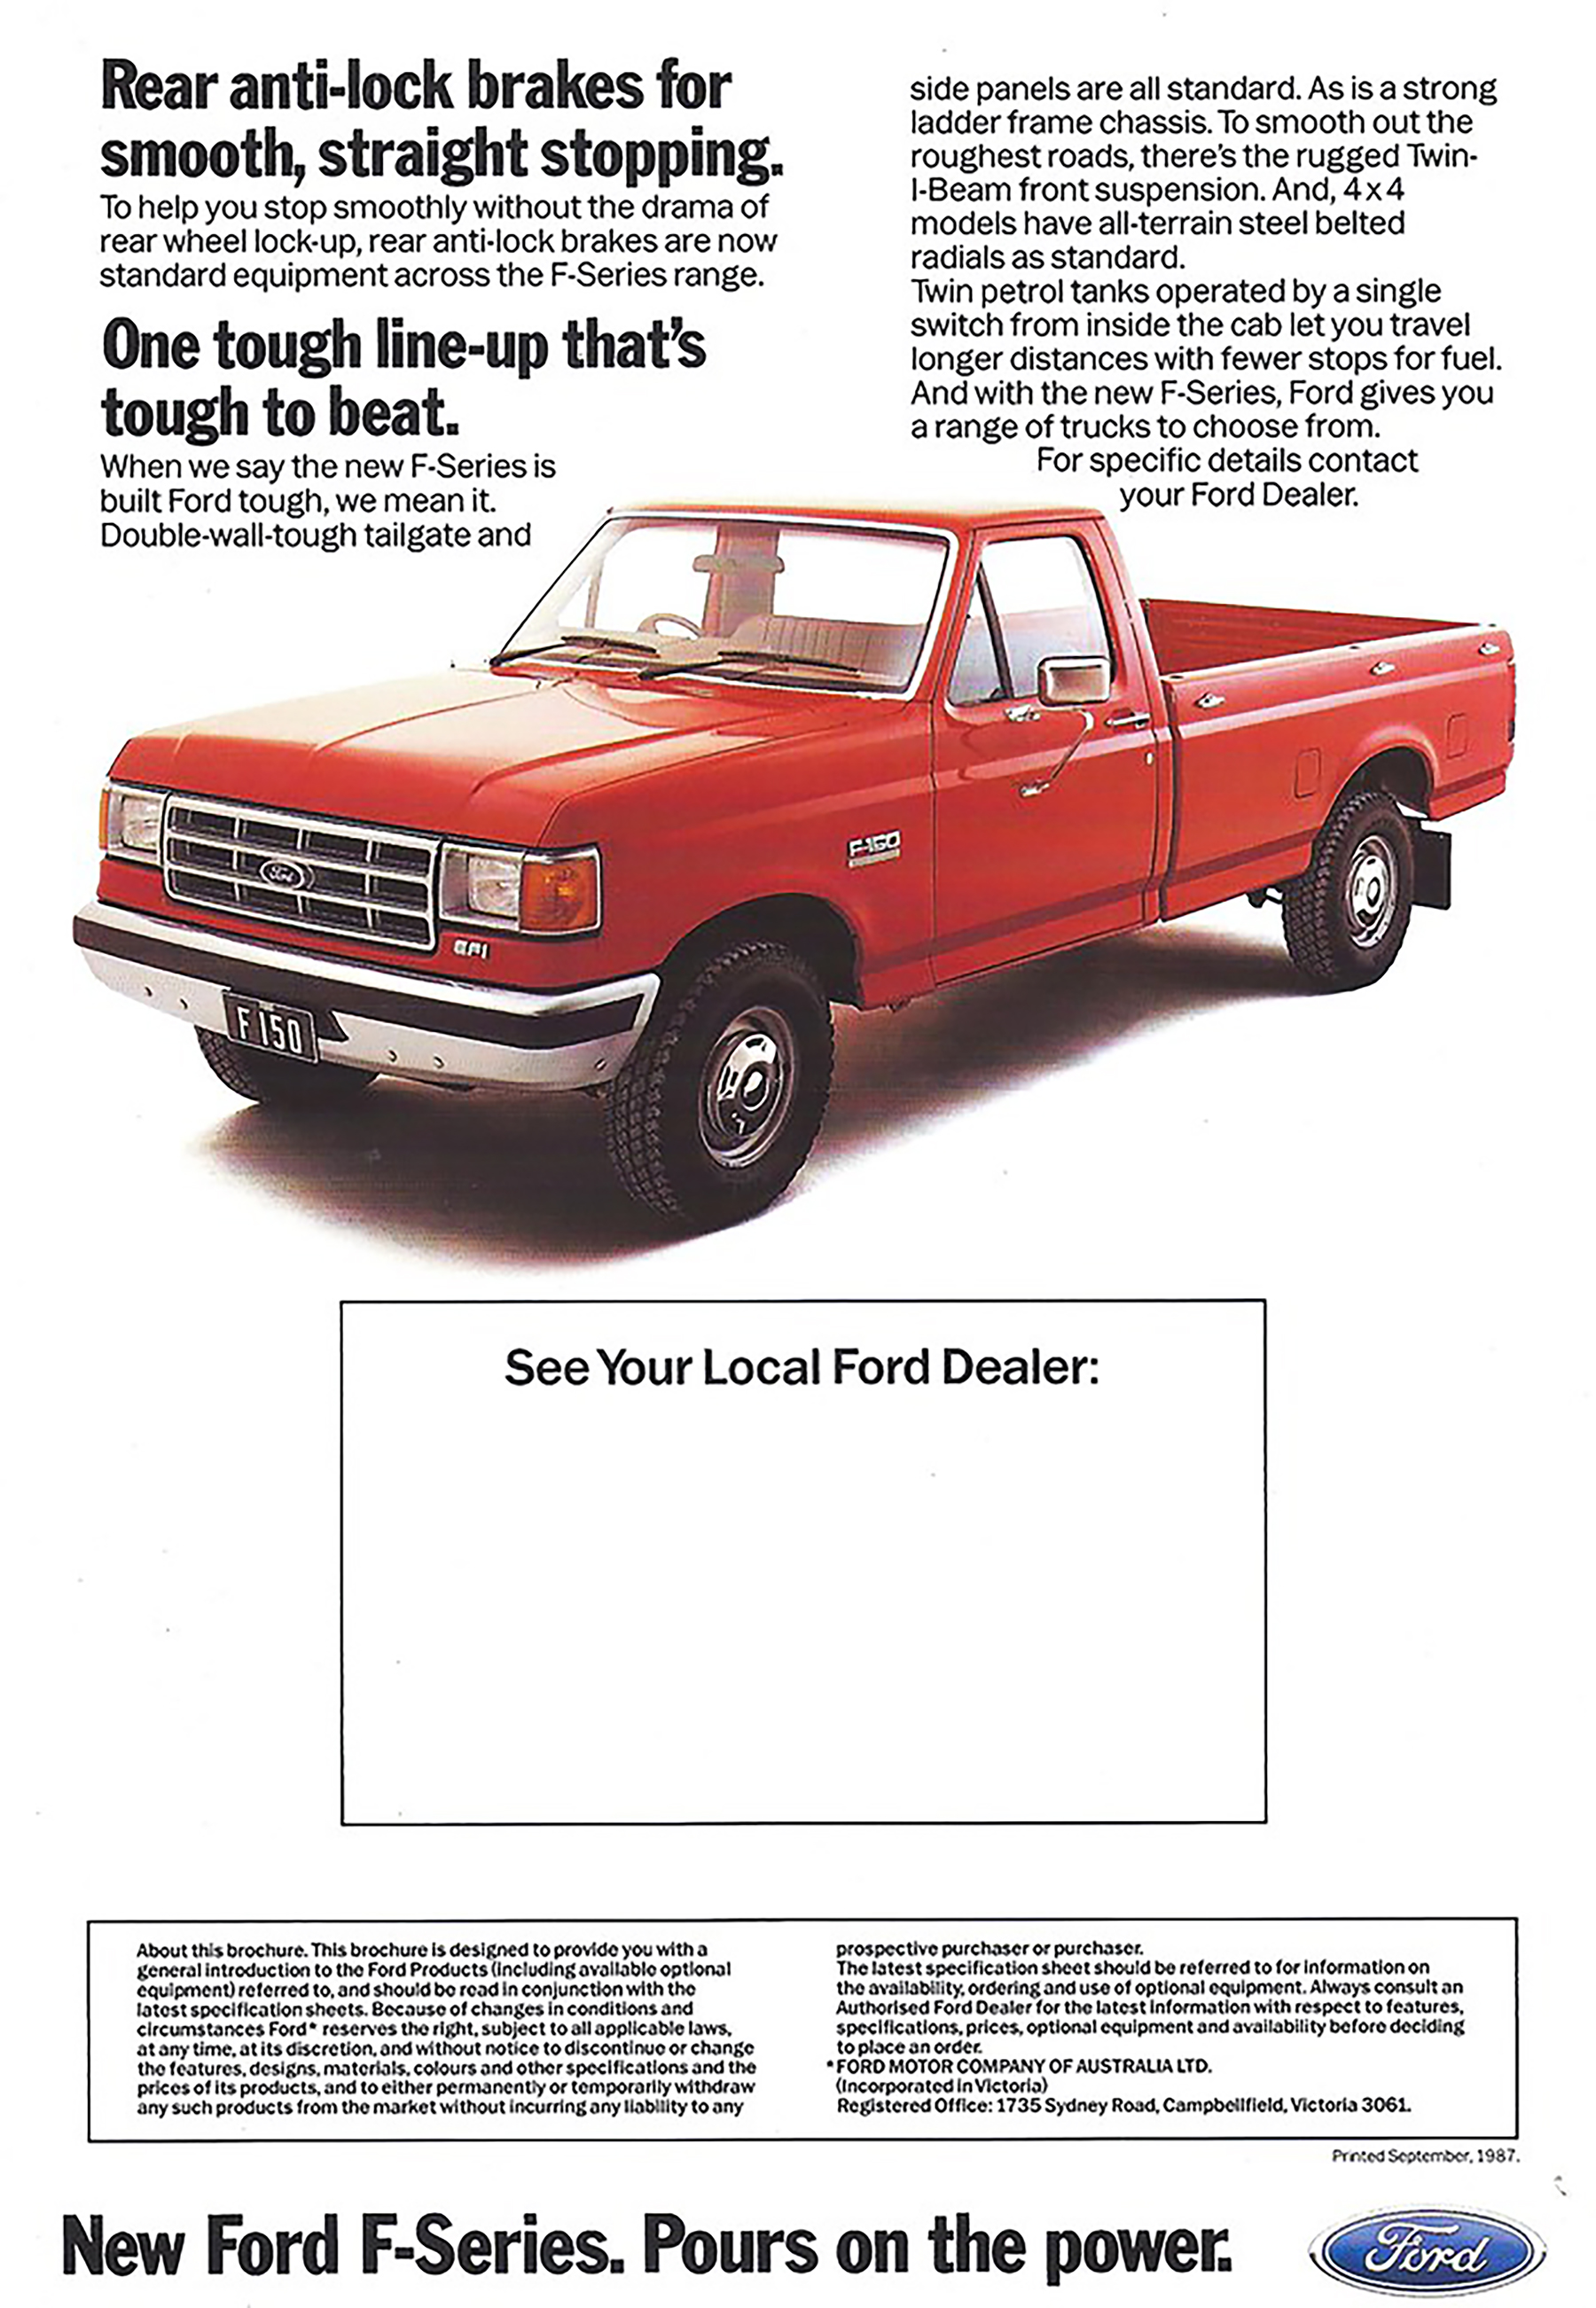 1987 Ford F-150 Ad